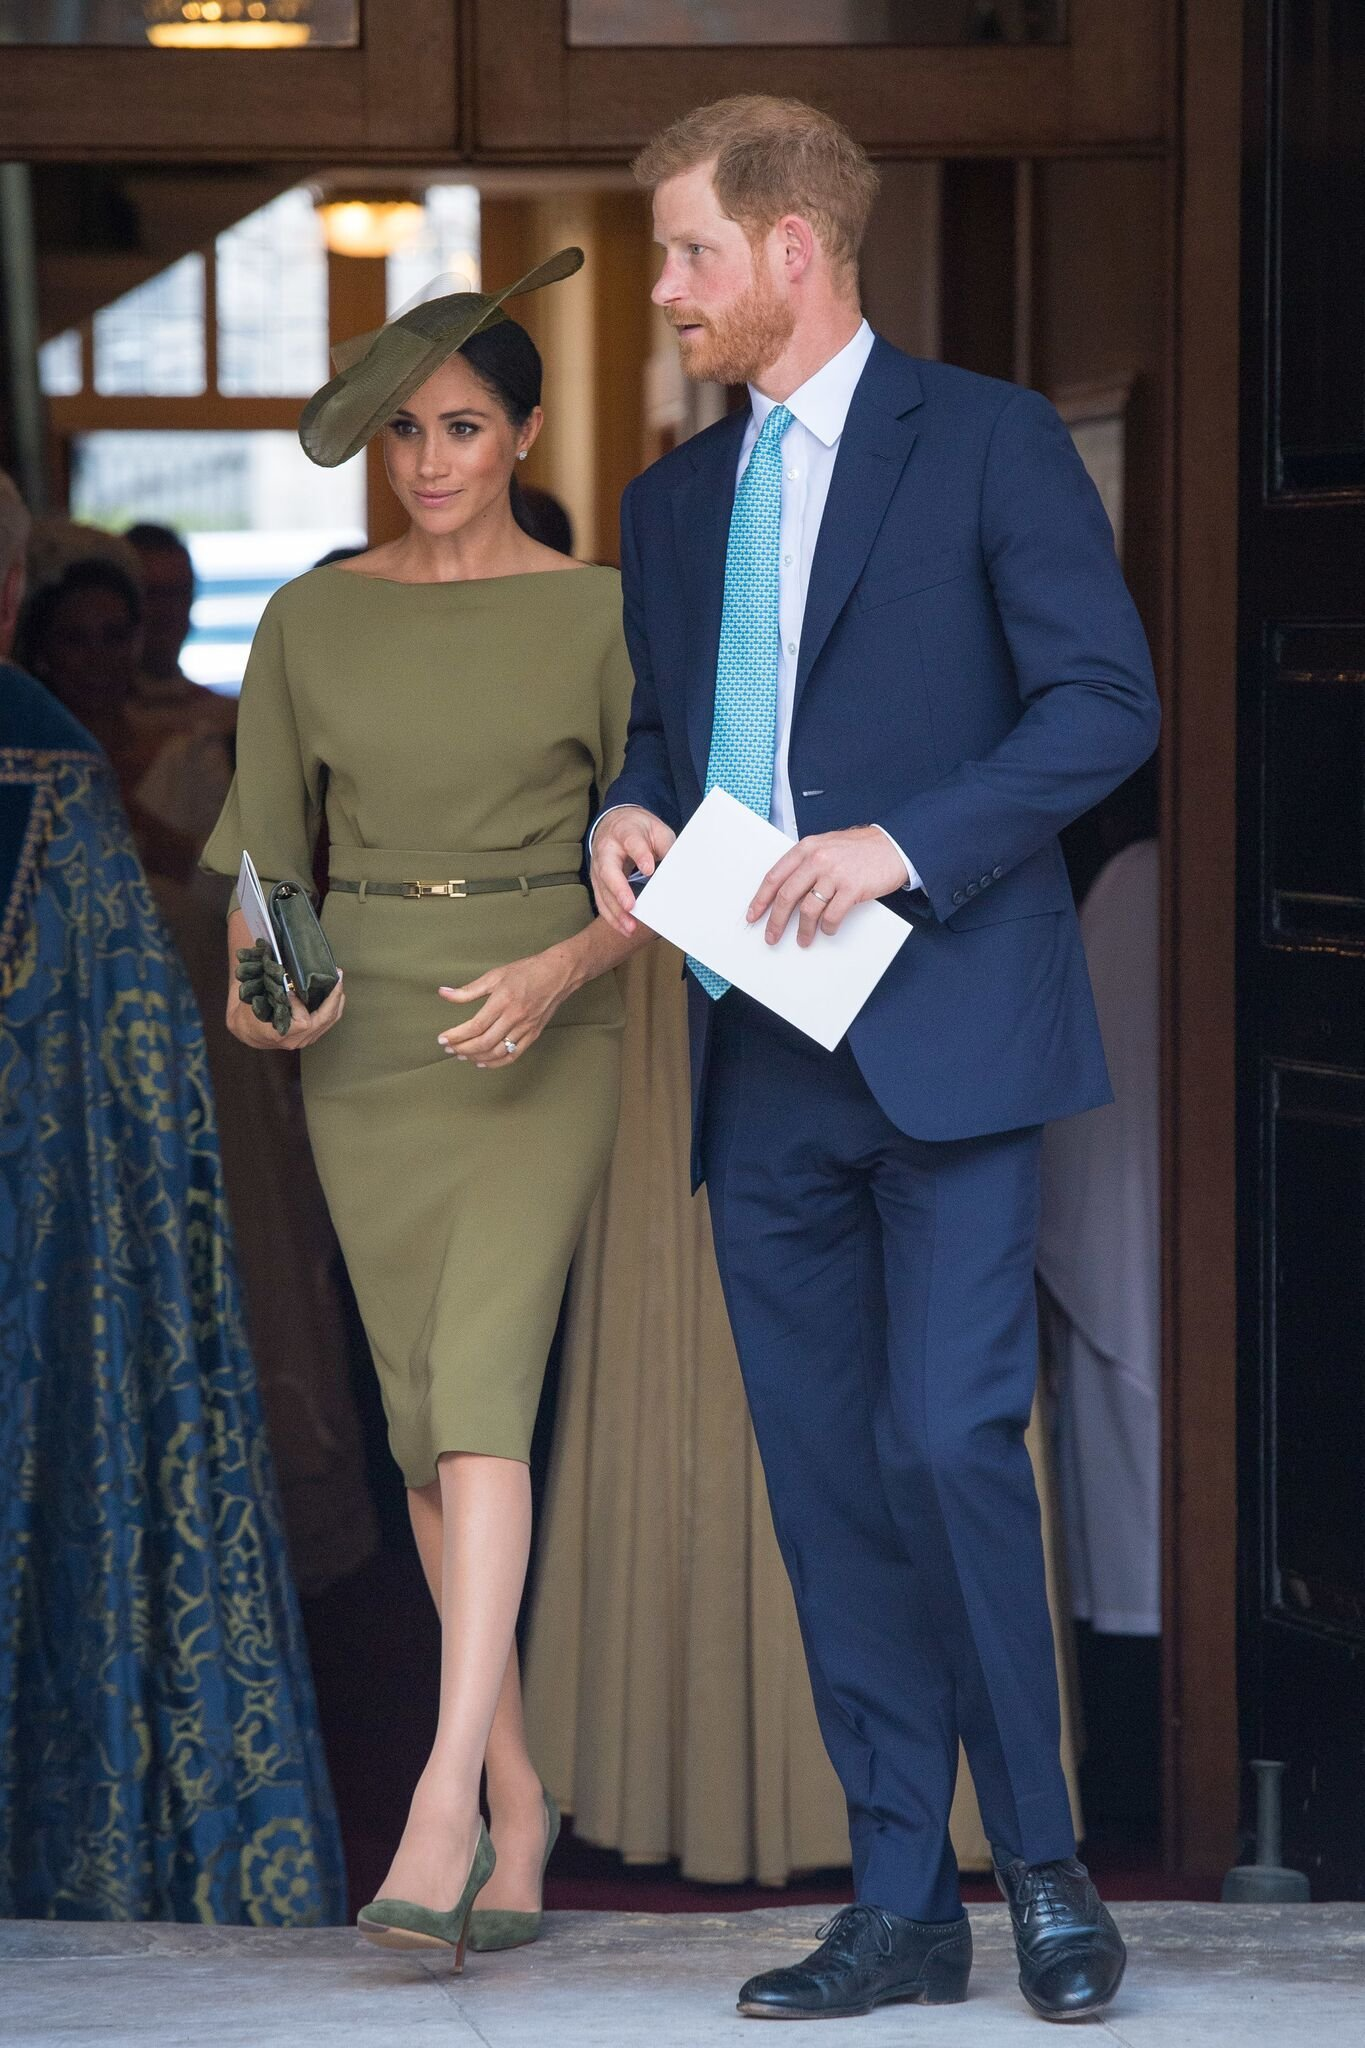 The Duke and Duchess of Sussex depart after attending the christening of Prince Louis at the Chapel Royal, St James's Palace  | Getty Images / Global Images Ukraine